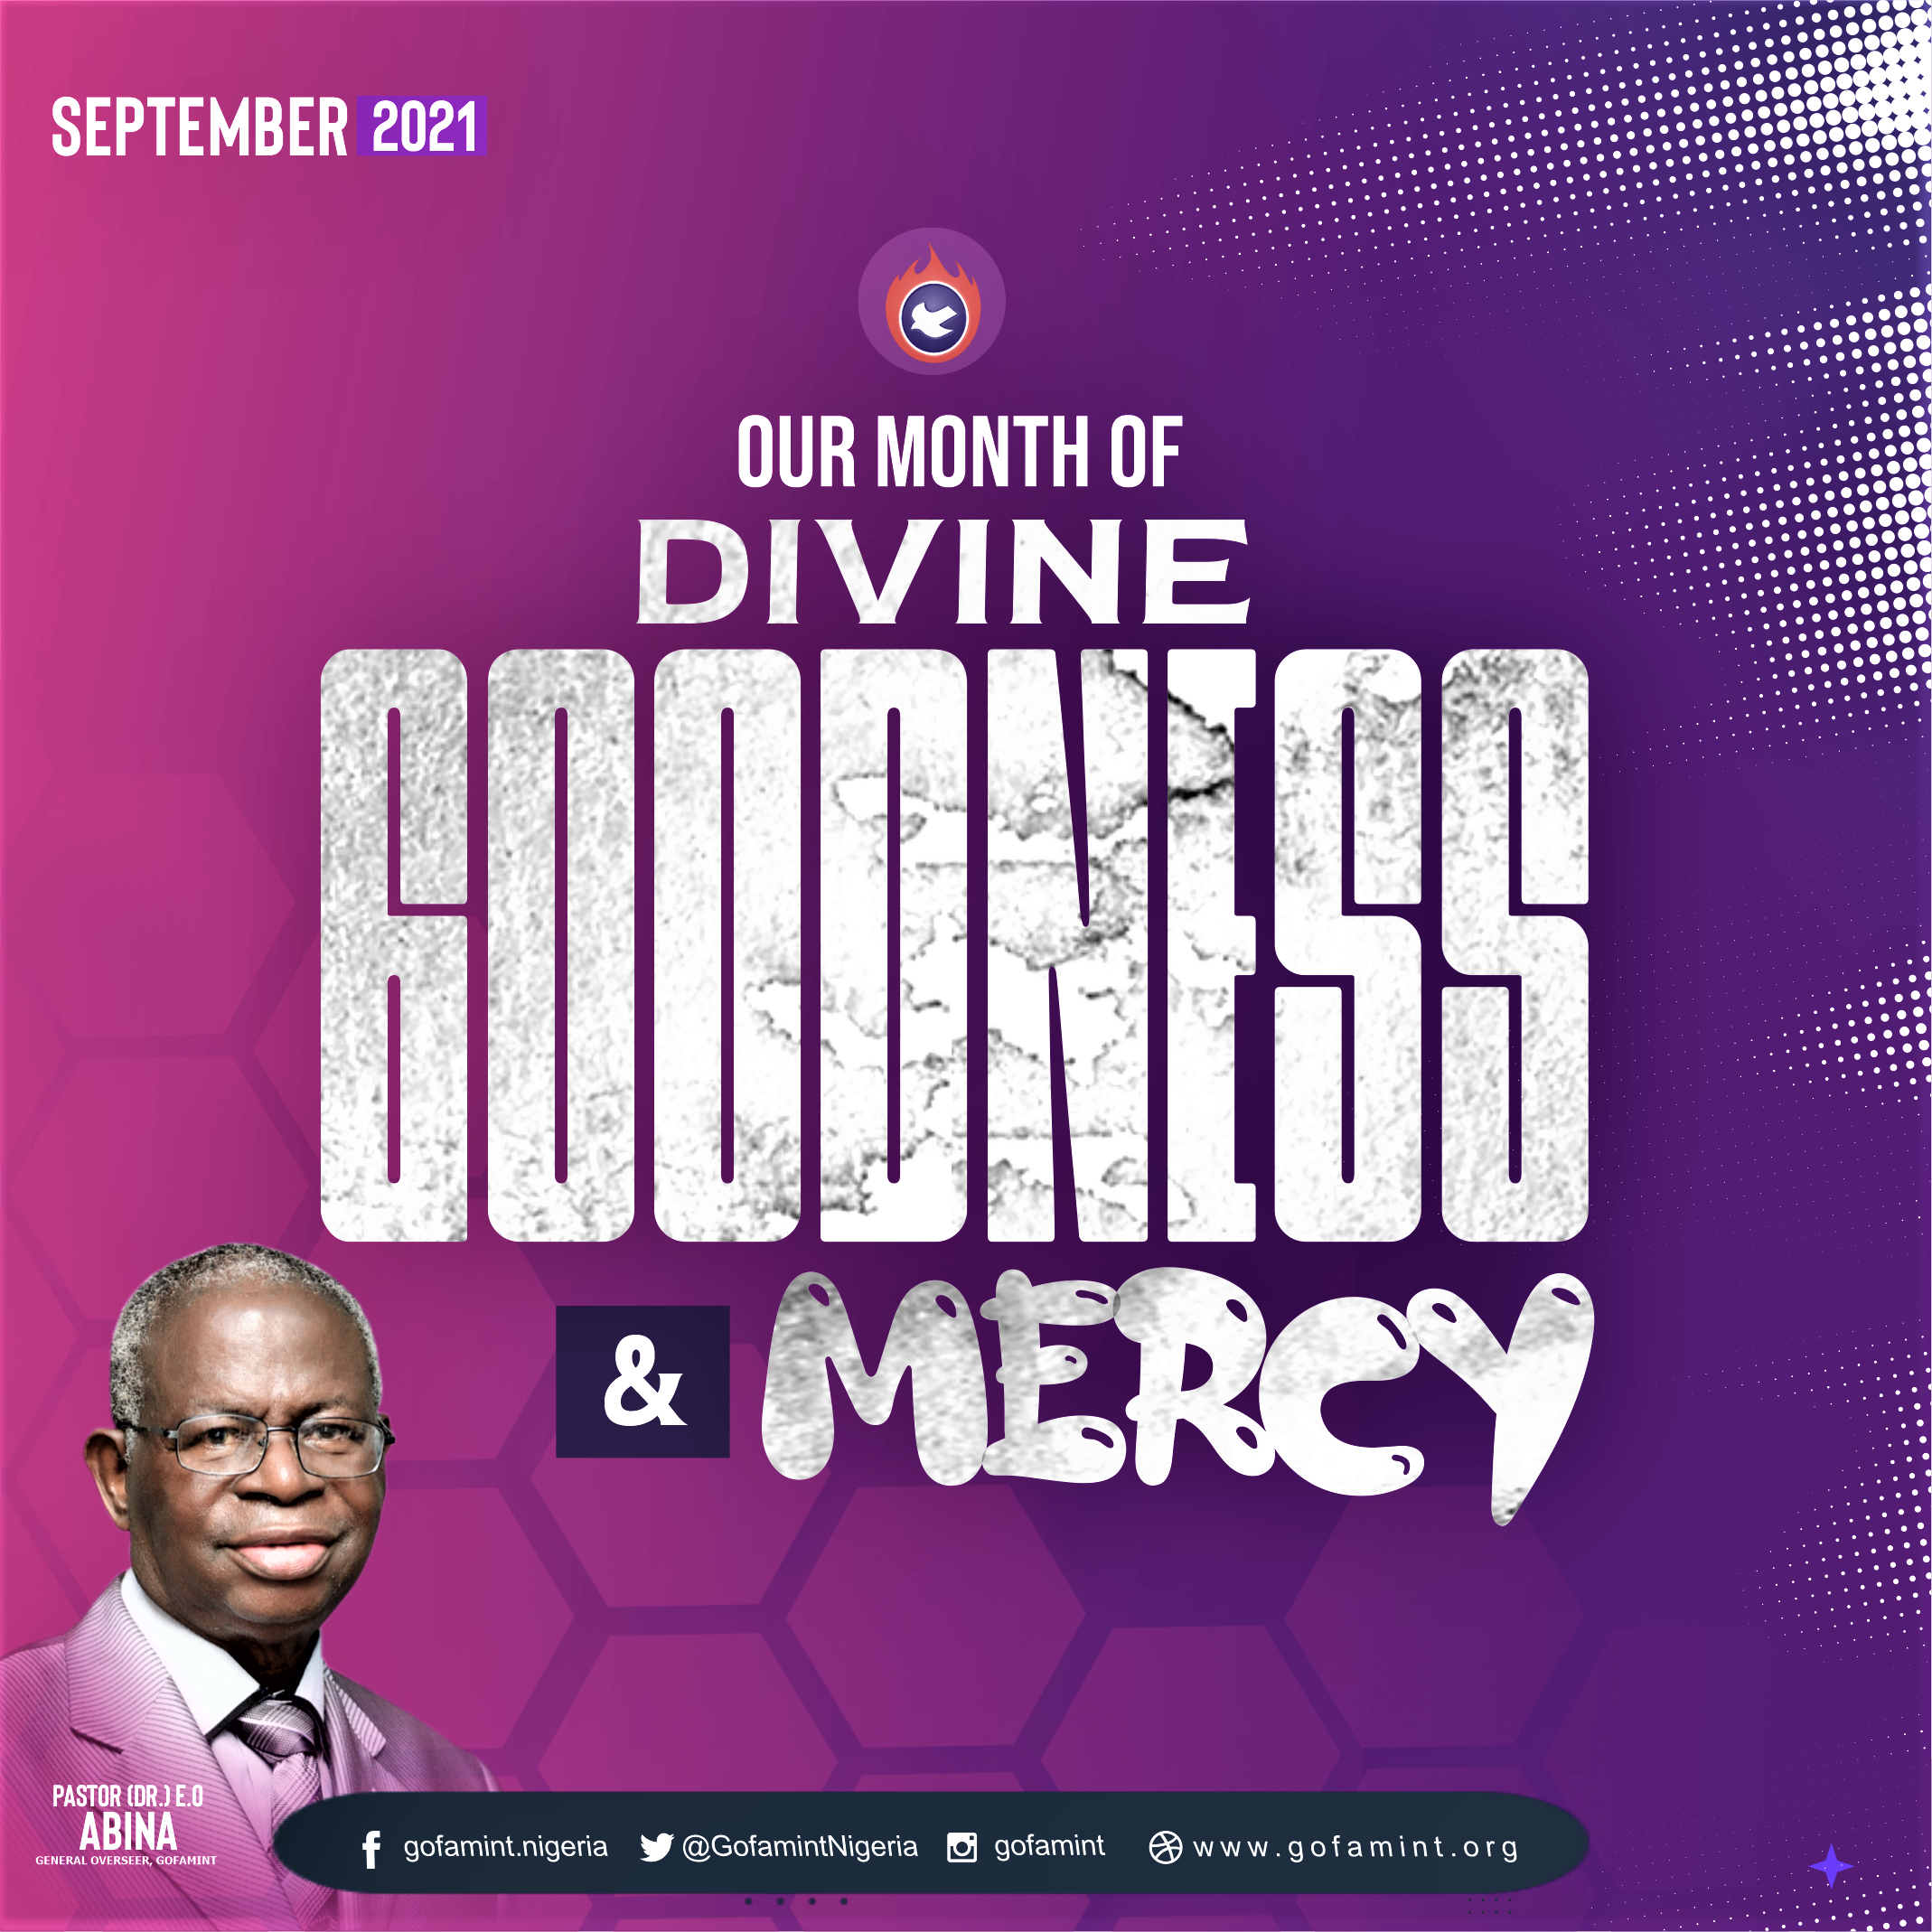 PROPHETIC DECLARATION FOR THE MONTH OF SEPTEMBER 2021